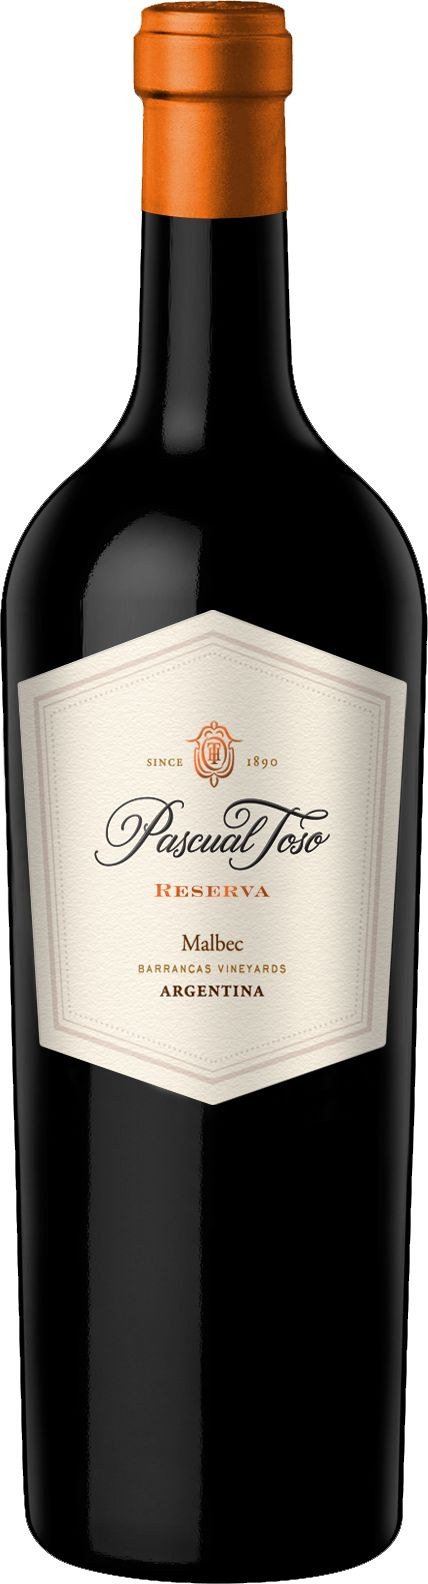 New Packaging! Pascual Toso Malbec Reserva